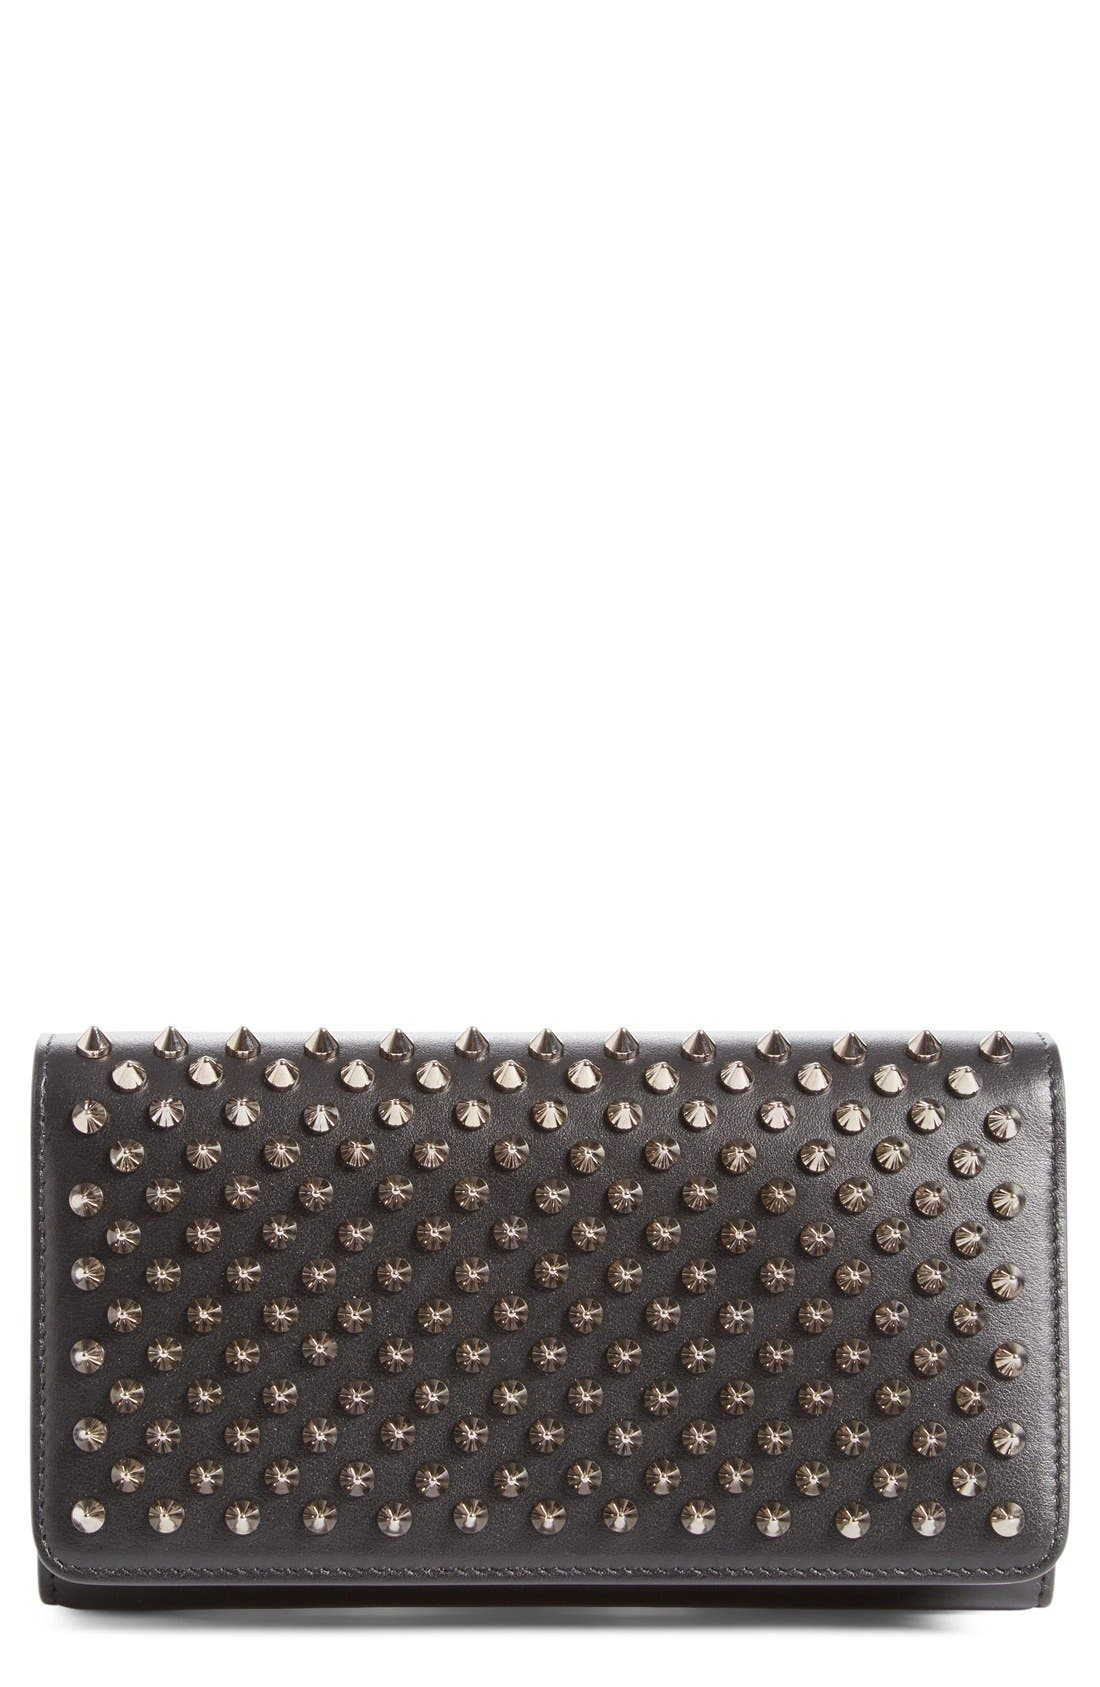 'Macaron' Studded Leather Continental Wallet,                         Main,                         color, Black/ Gunmetal